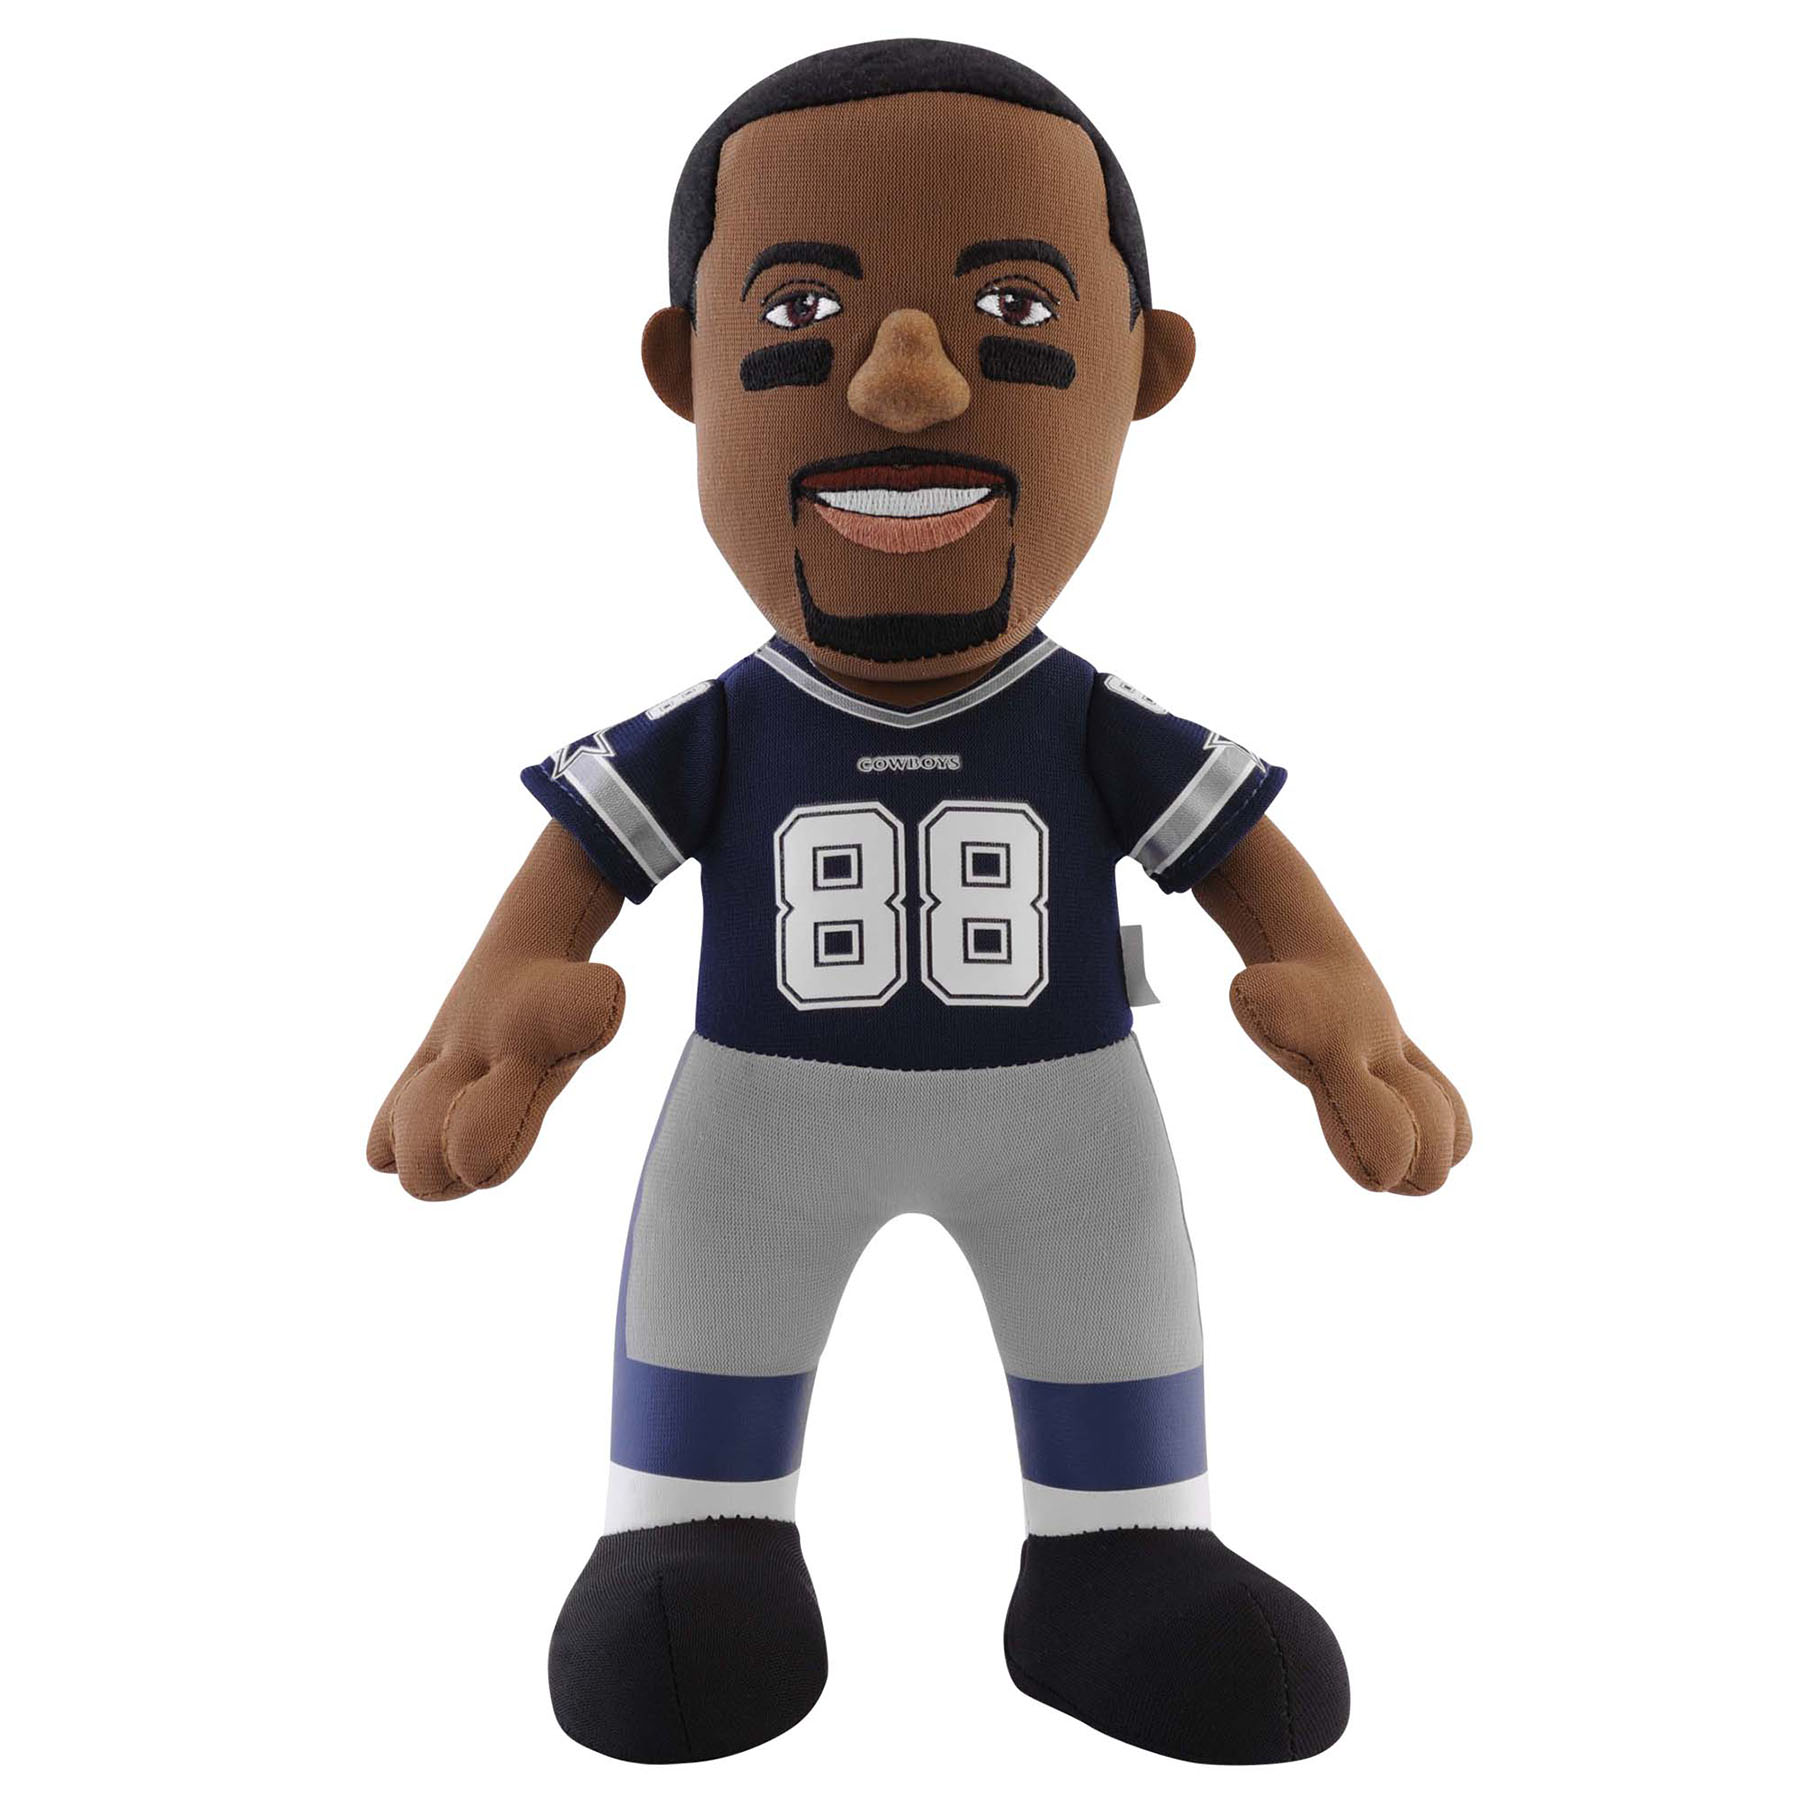 Dallas Cowboys Bleacher Creature Plush - Dez Bryant